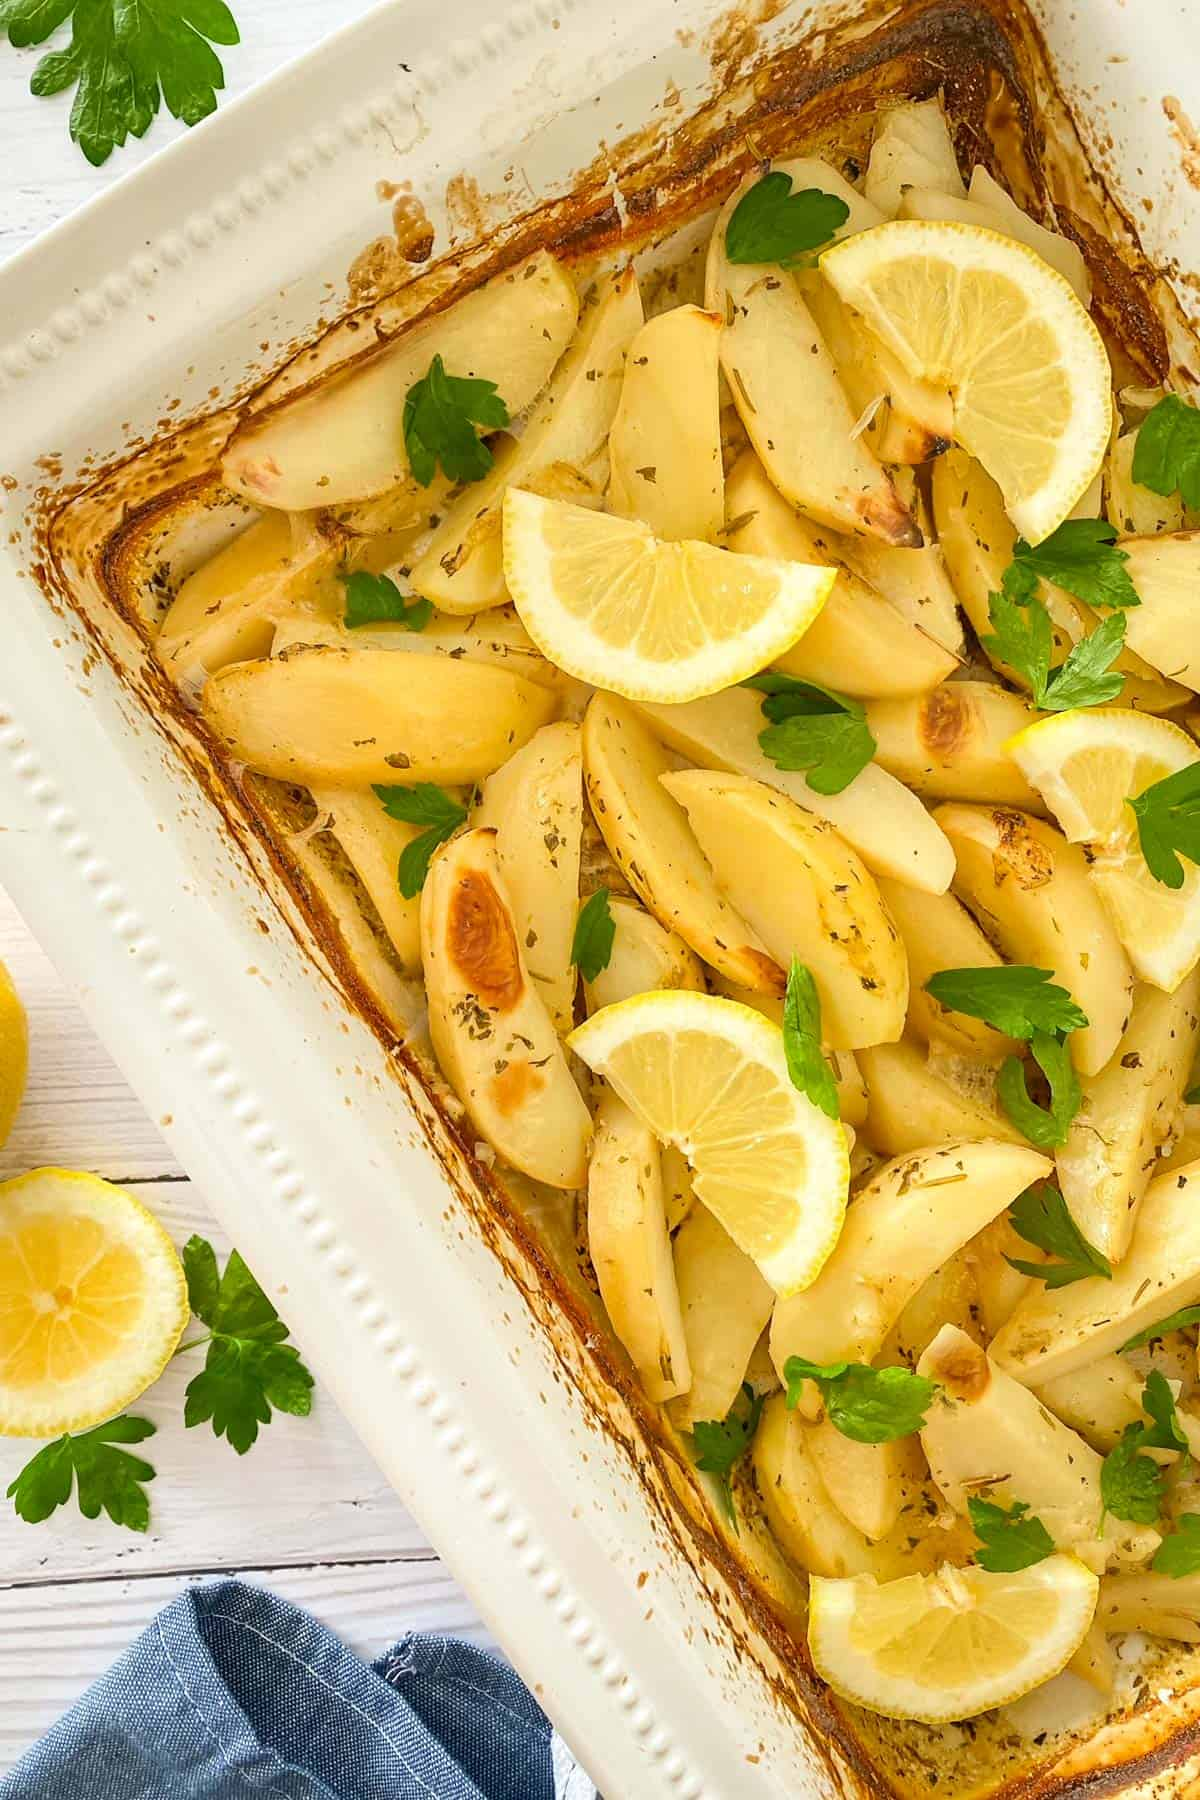 White baking dish filled with roasted potatoes with lemon wedges and parsley on top.